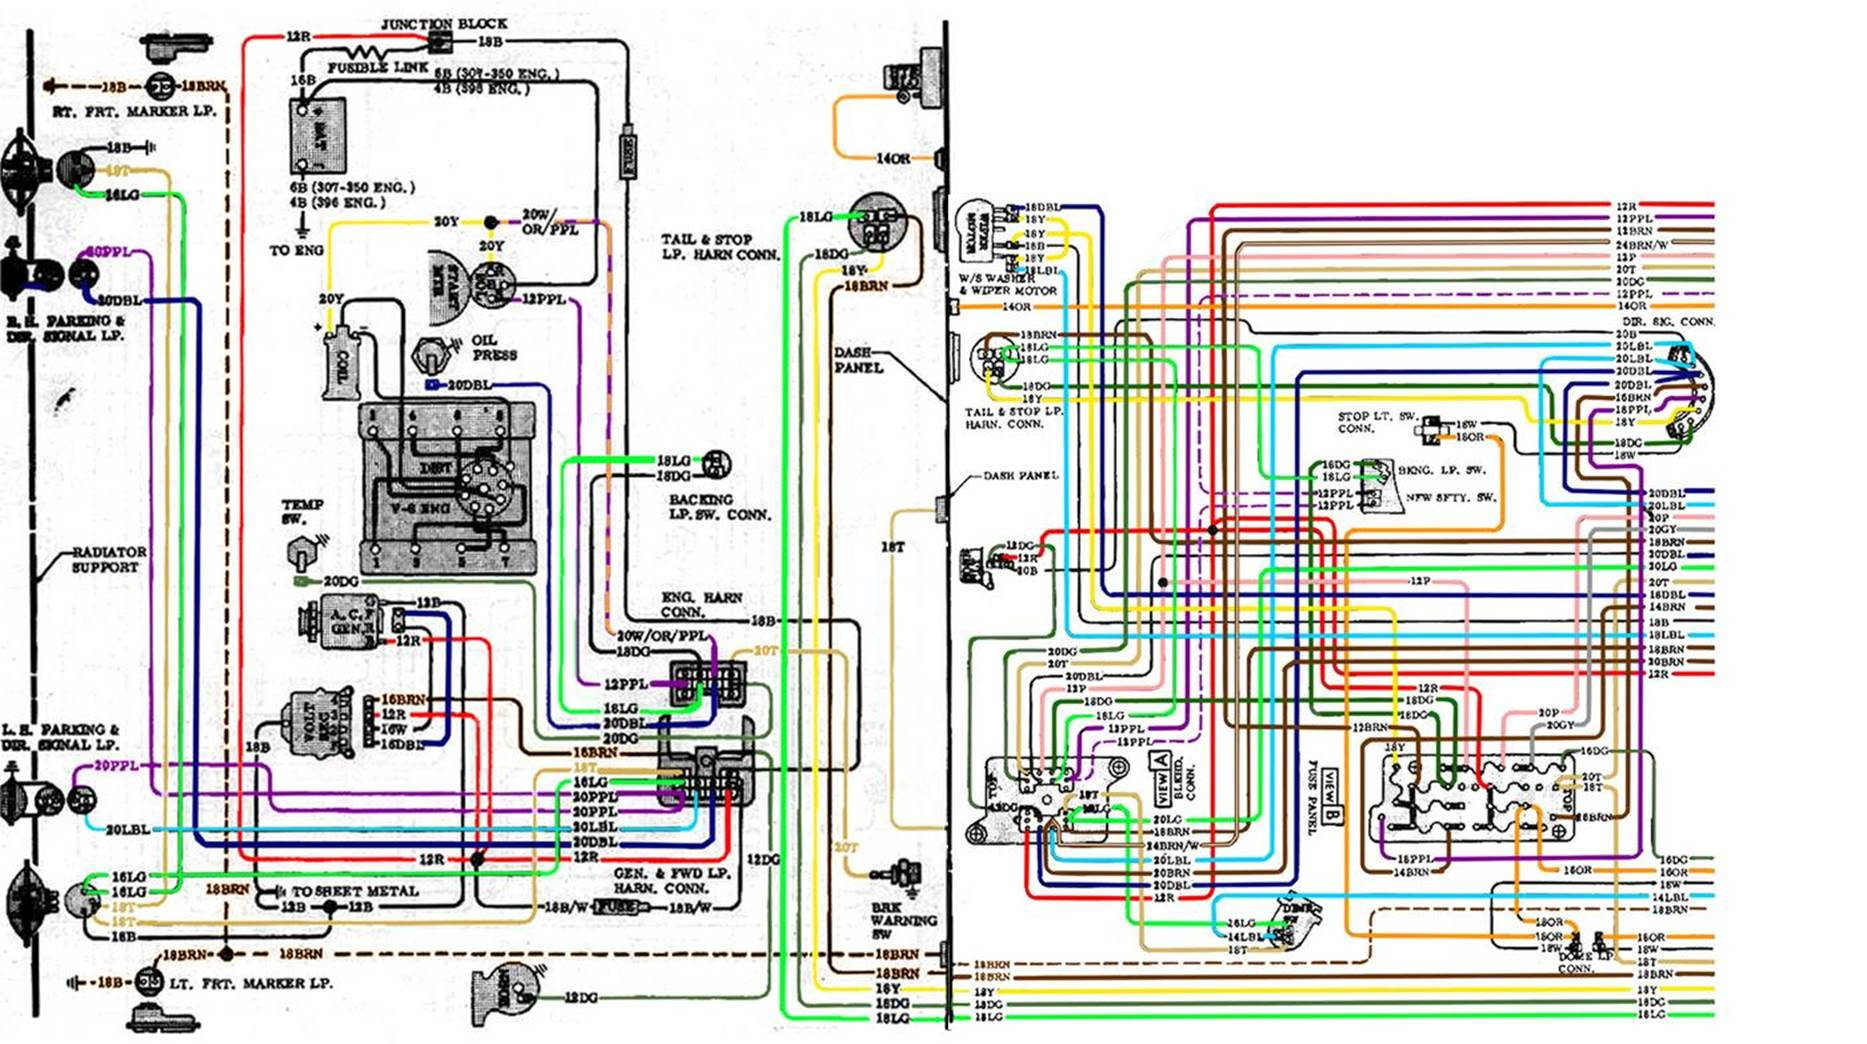 image002 67 72 chevy wiring diagram chevy truck wiring harness at fashall.co